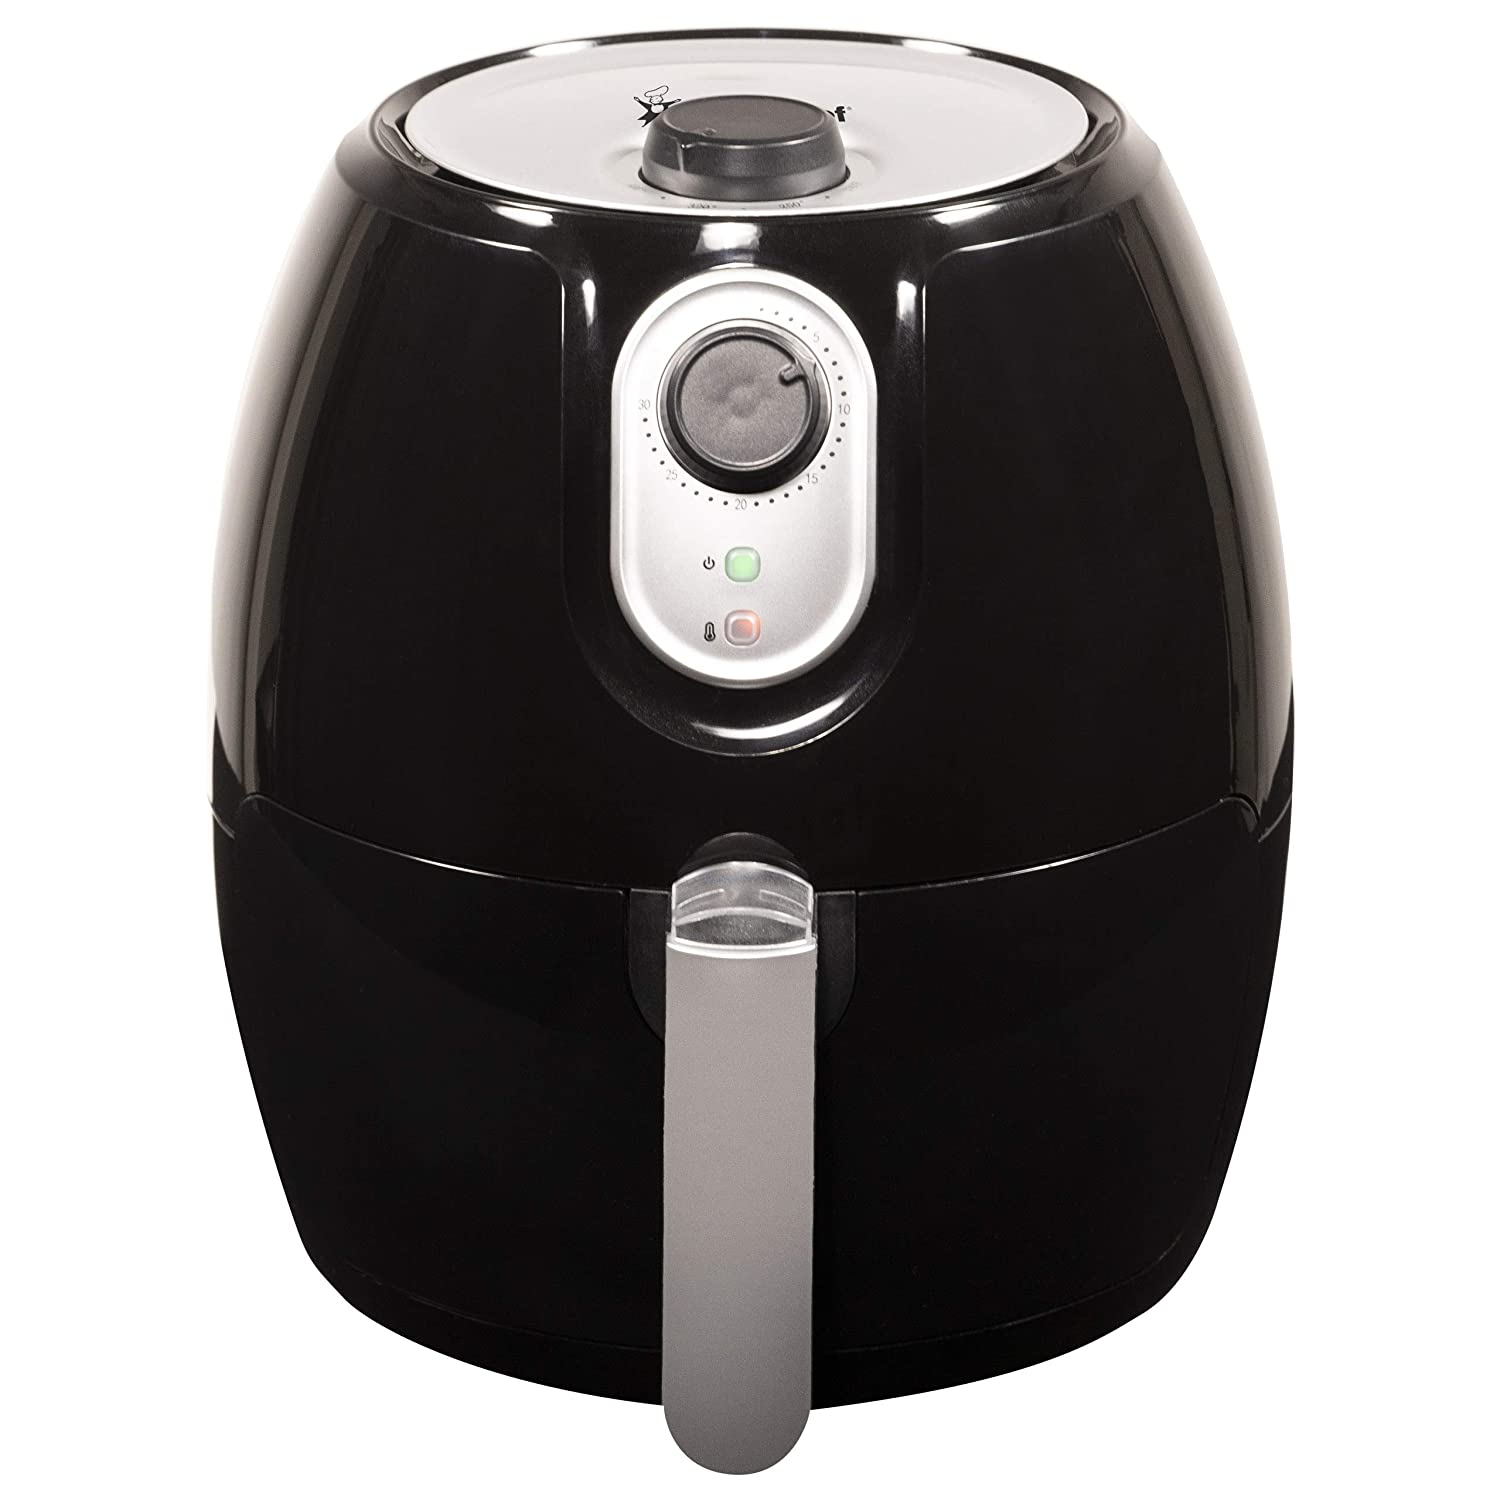 Magic Chef Airfryer 2.6 Quart Compact Snack Sized Oilless Fryer - Manual Control - Dishwasher Safe Basket with Recipe Book Included - MCAF26MB - Black